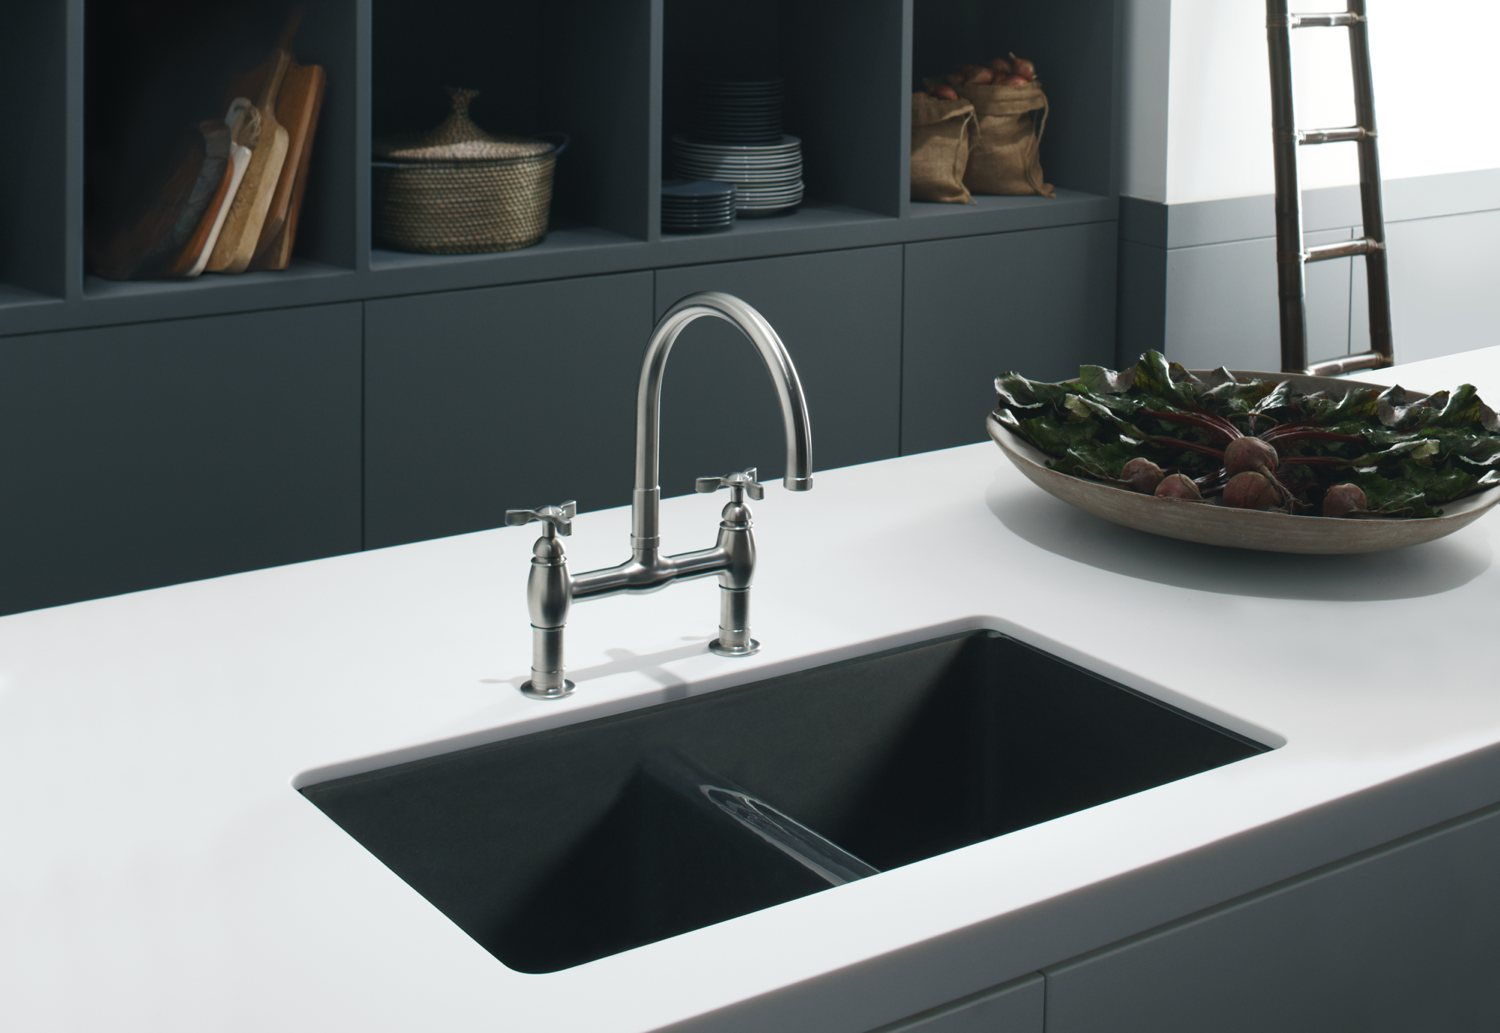 Kohler K-5840-5U-96 Anthem Cast Iron Undercounter Sink with Five